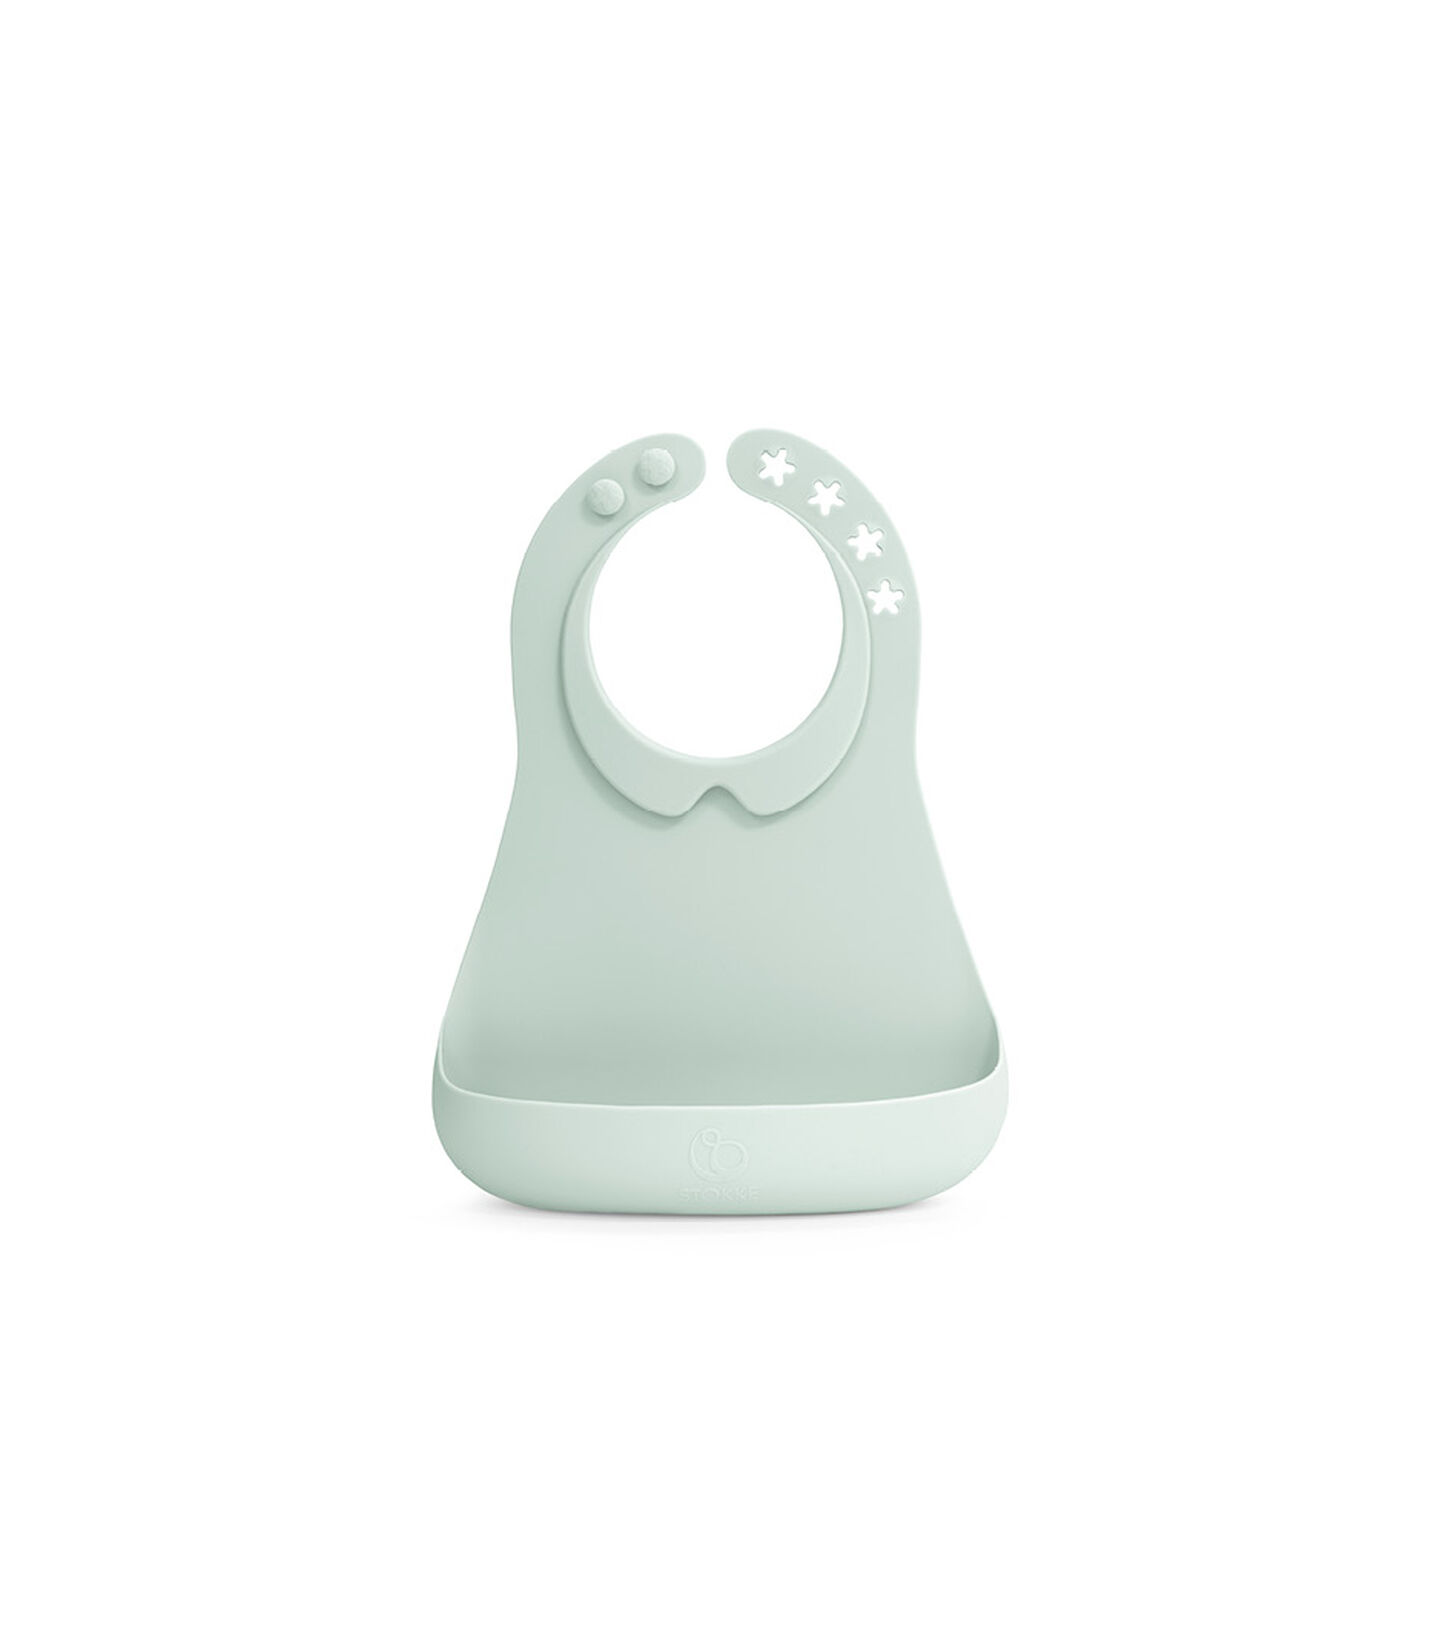 Stokke™ Munch Bib. Tableware